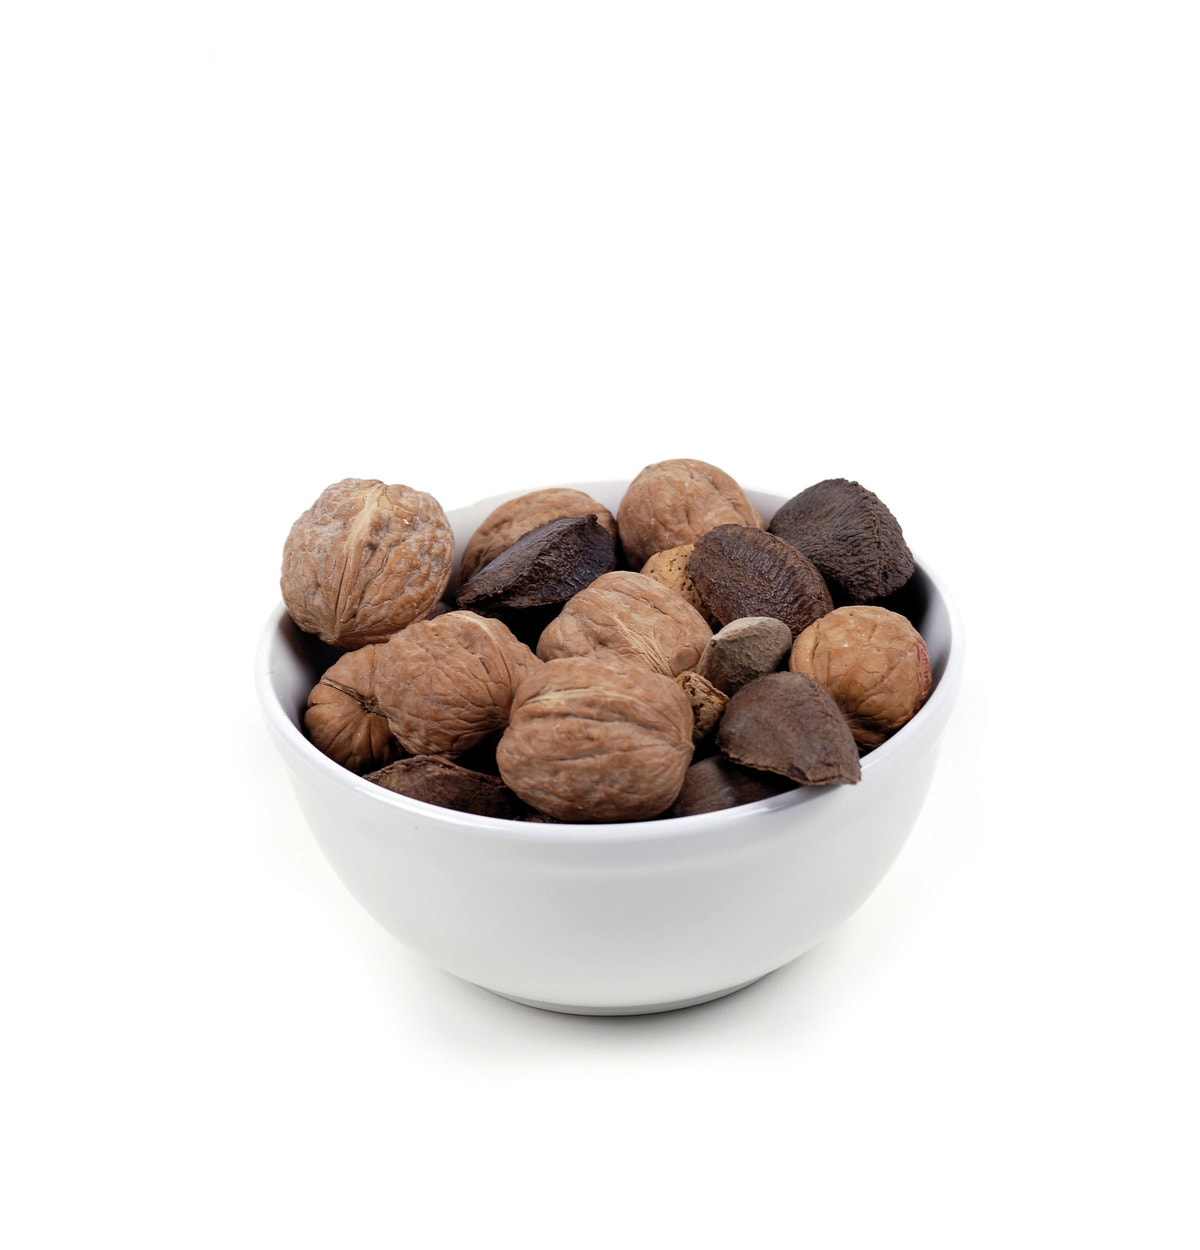 how to eat macadamia nuts